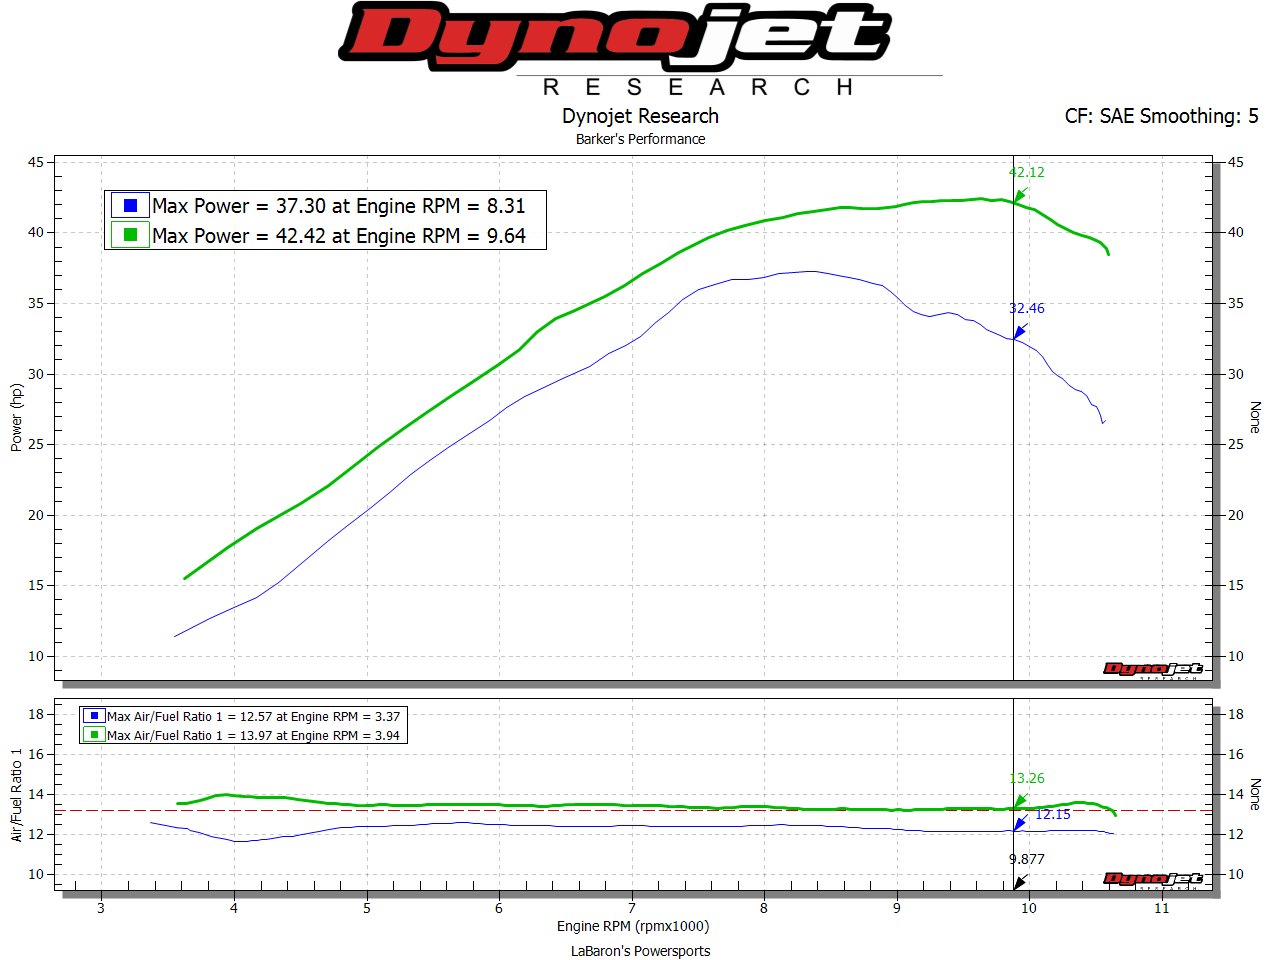 Yfz 450r Wiring Diagram Yamaha Full Single Exhaust System For Efi Models Barkers Power Commander V Fuel Controller Mapped Ehs Intake Vs Stock Dyno